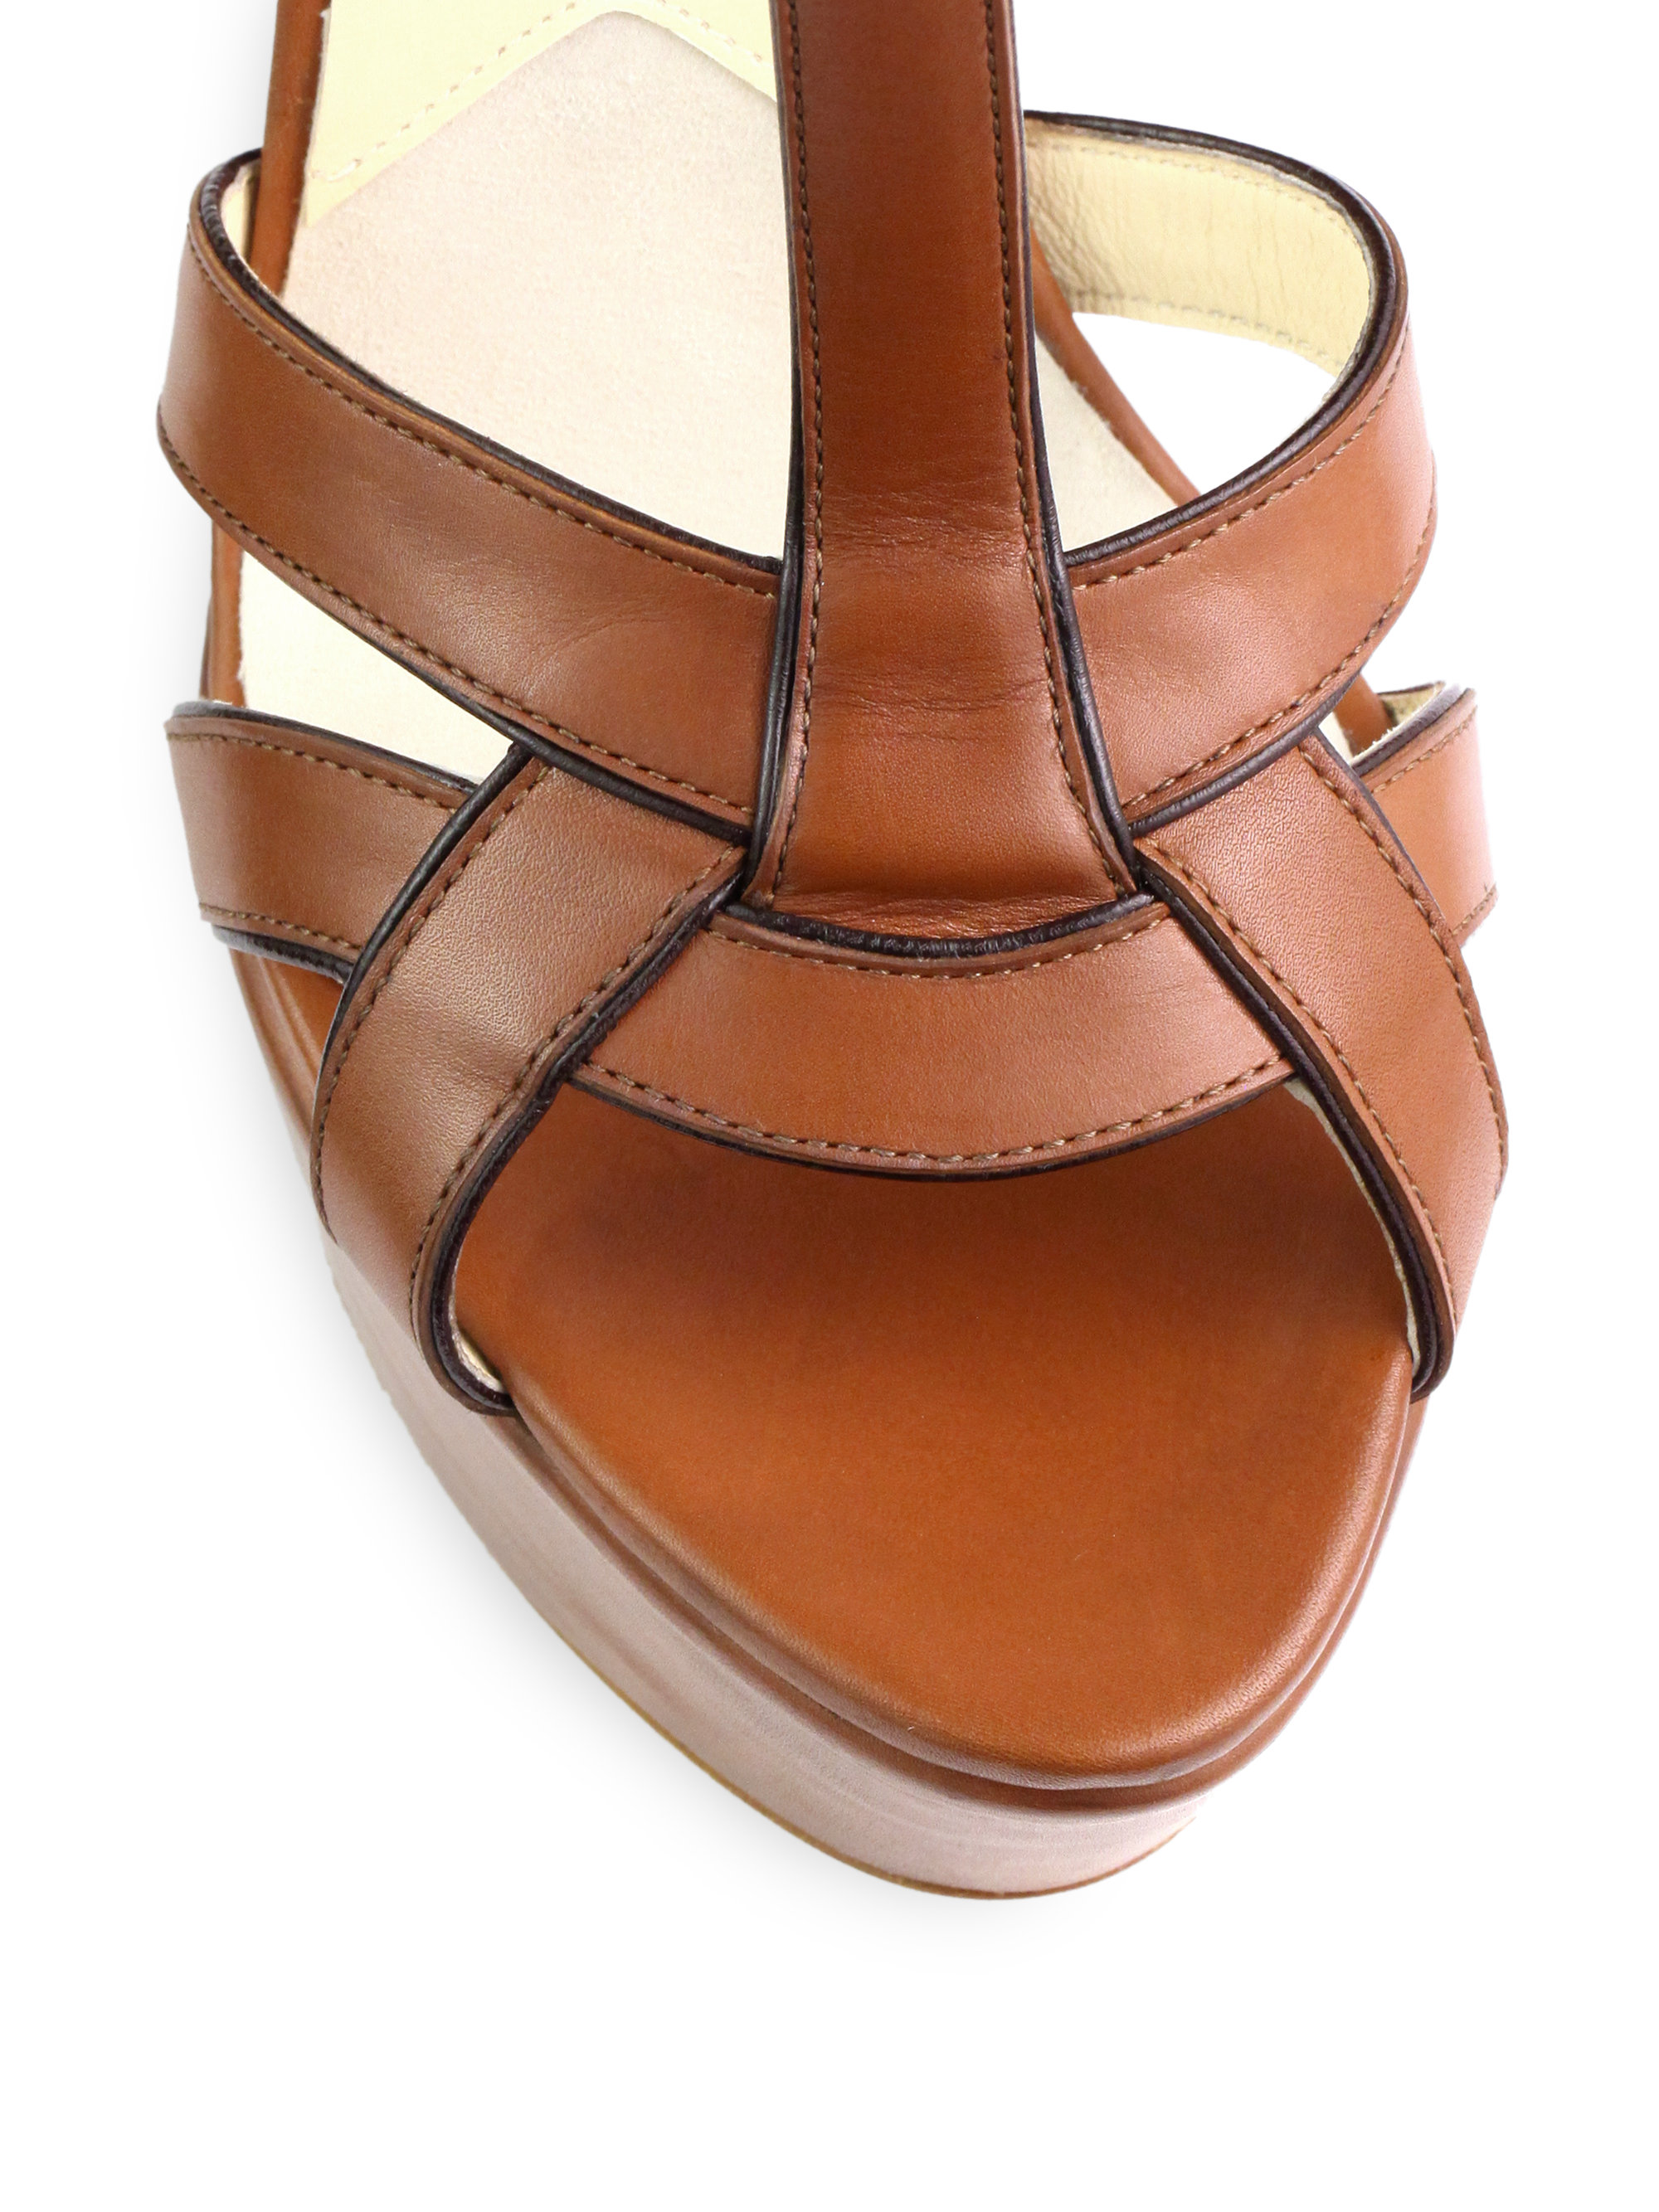 013d75d4f631 Lyst - Brian Atwood Sema Leather Wedge Sandals in Brown